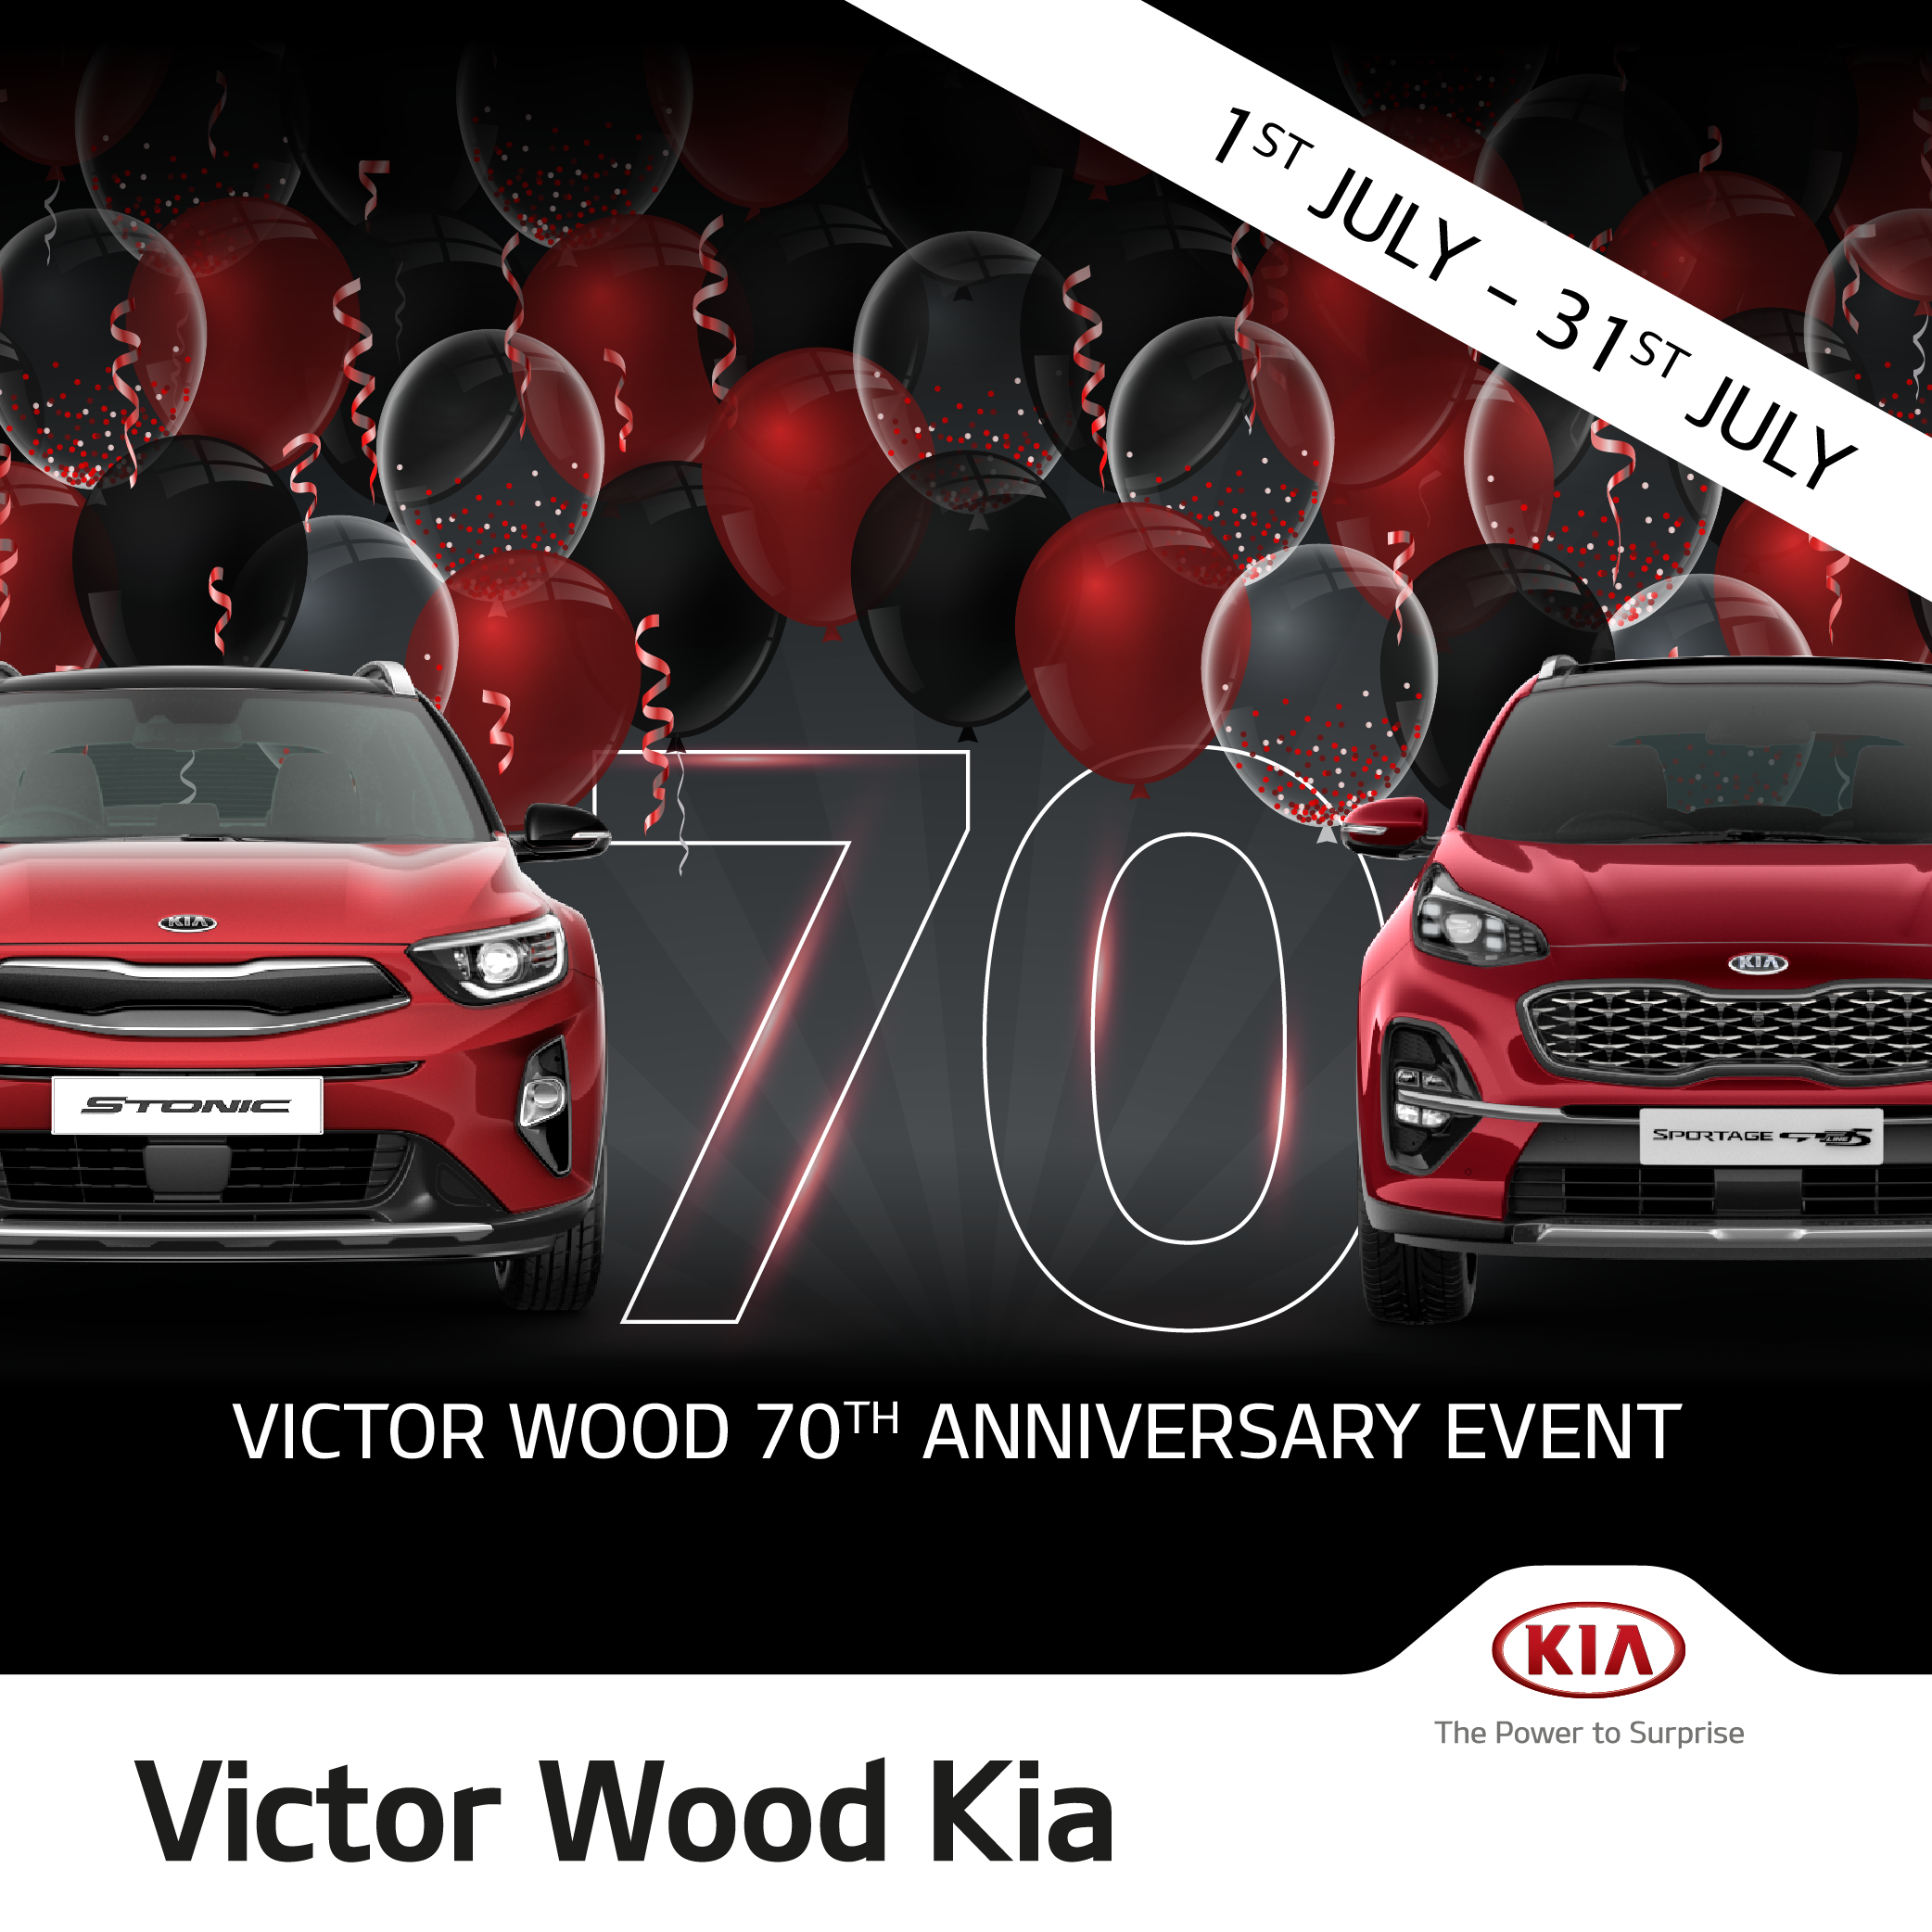 Victor Wood 70th Anniversary